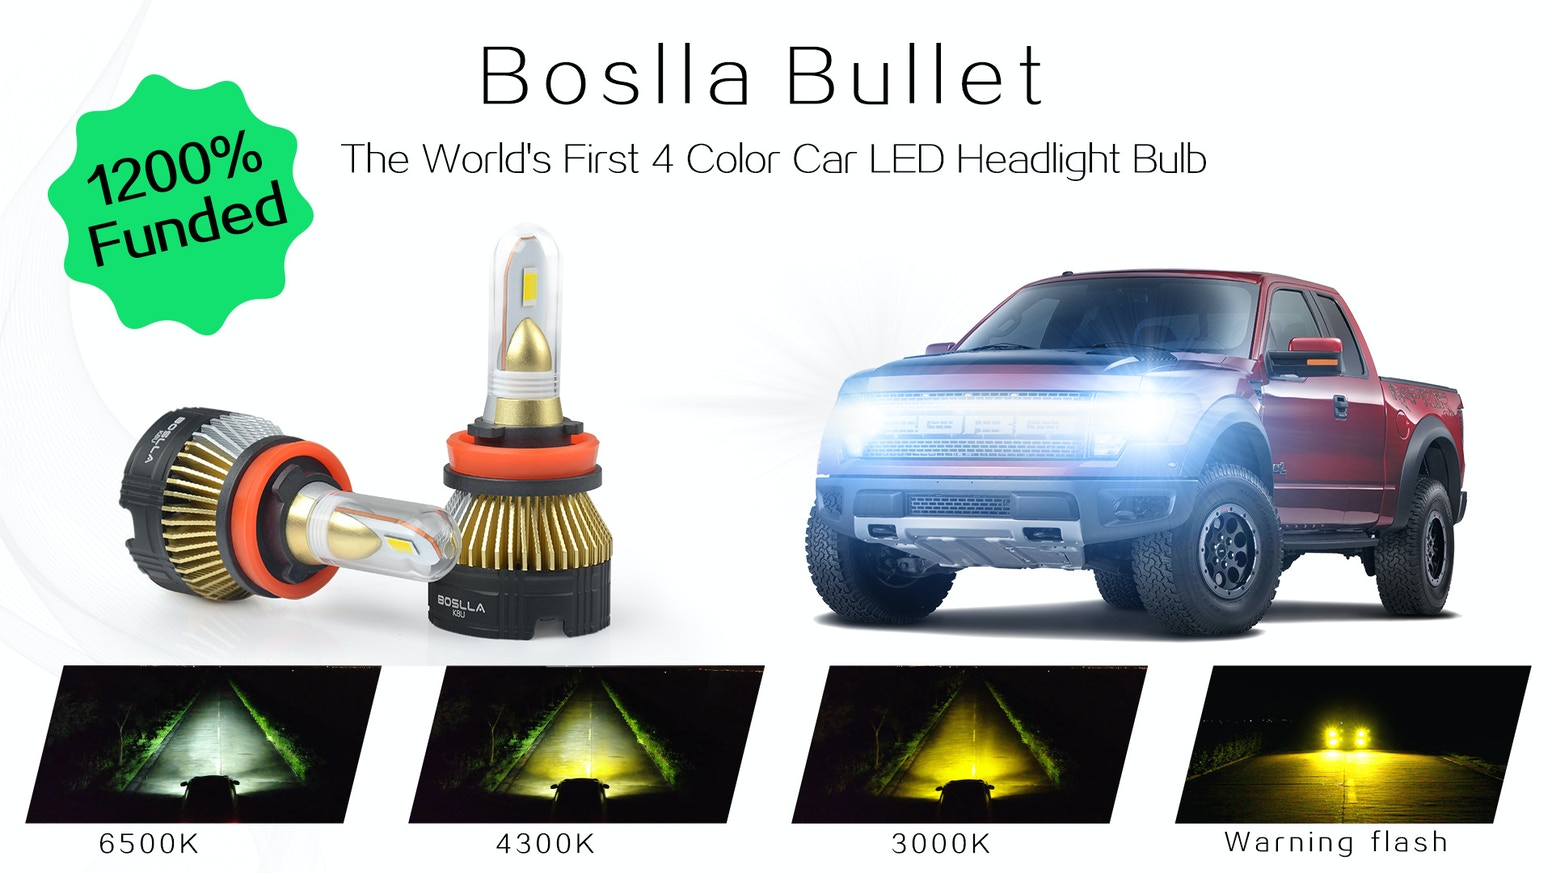 Boslla - The World's First Four-Color Car LED Headlight Bulb